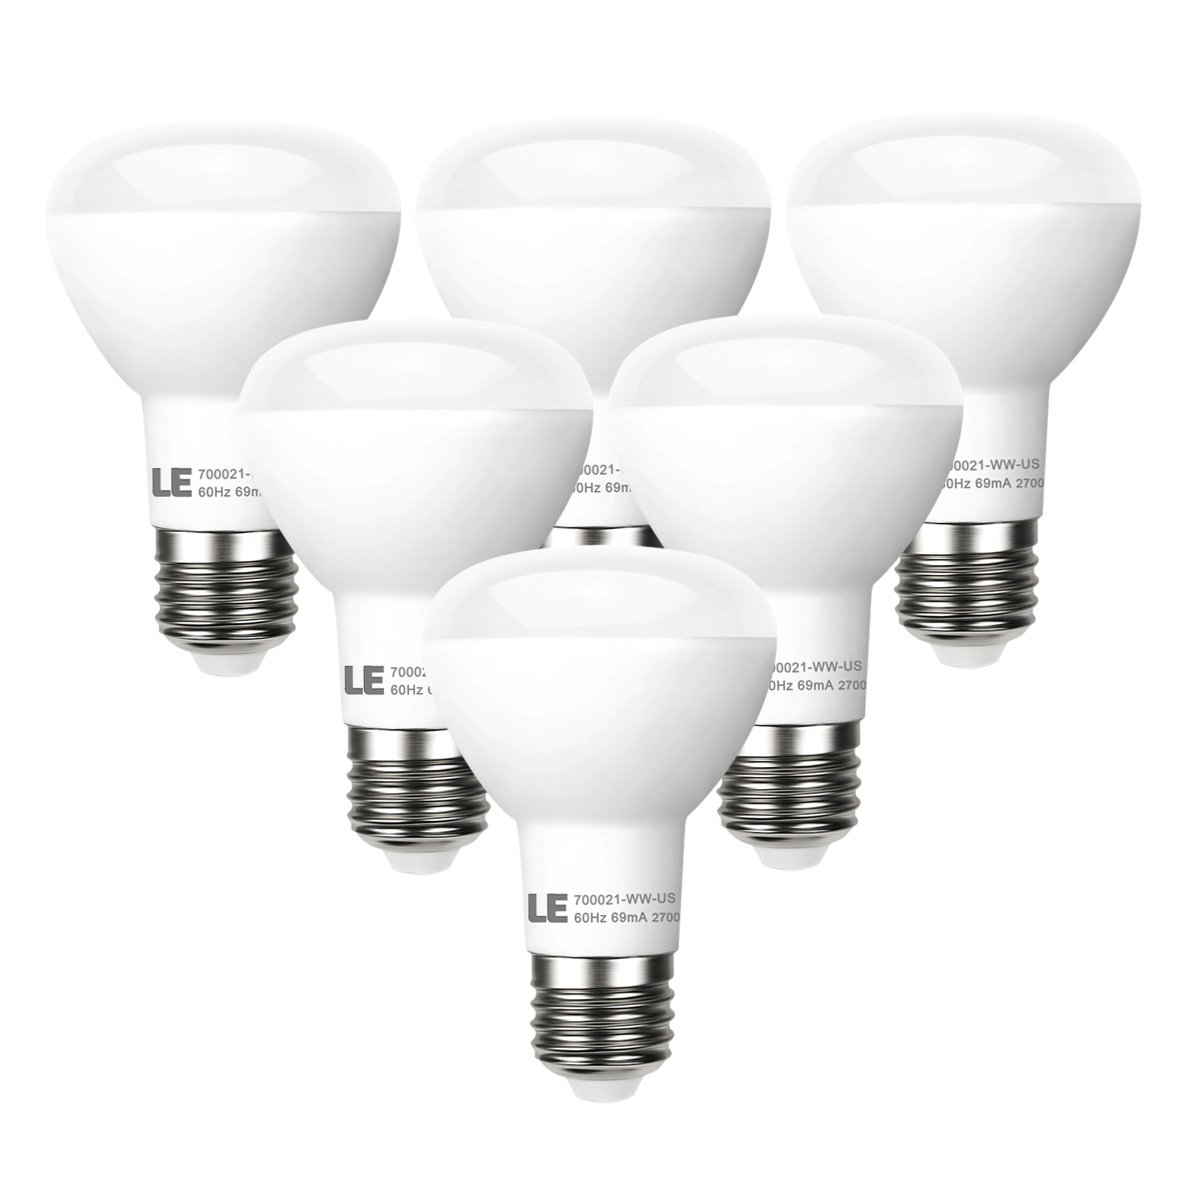 6 Pack Led Can Light Bulbs Flood Lights 45w Bulbs Equivalent 8w Warm White 2700k